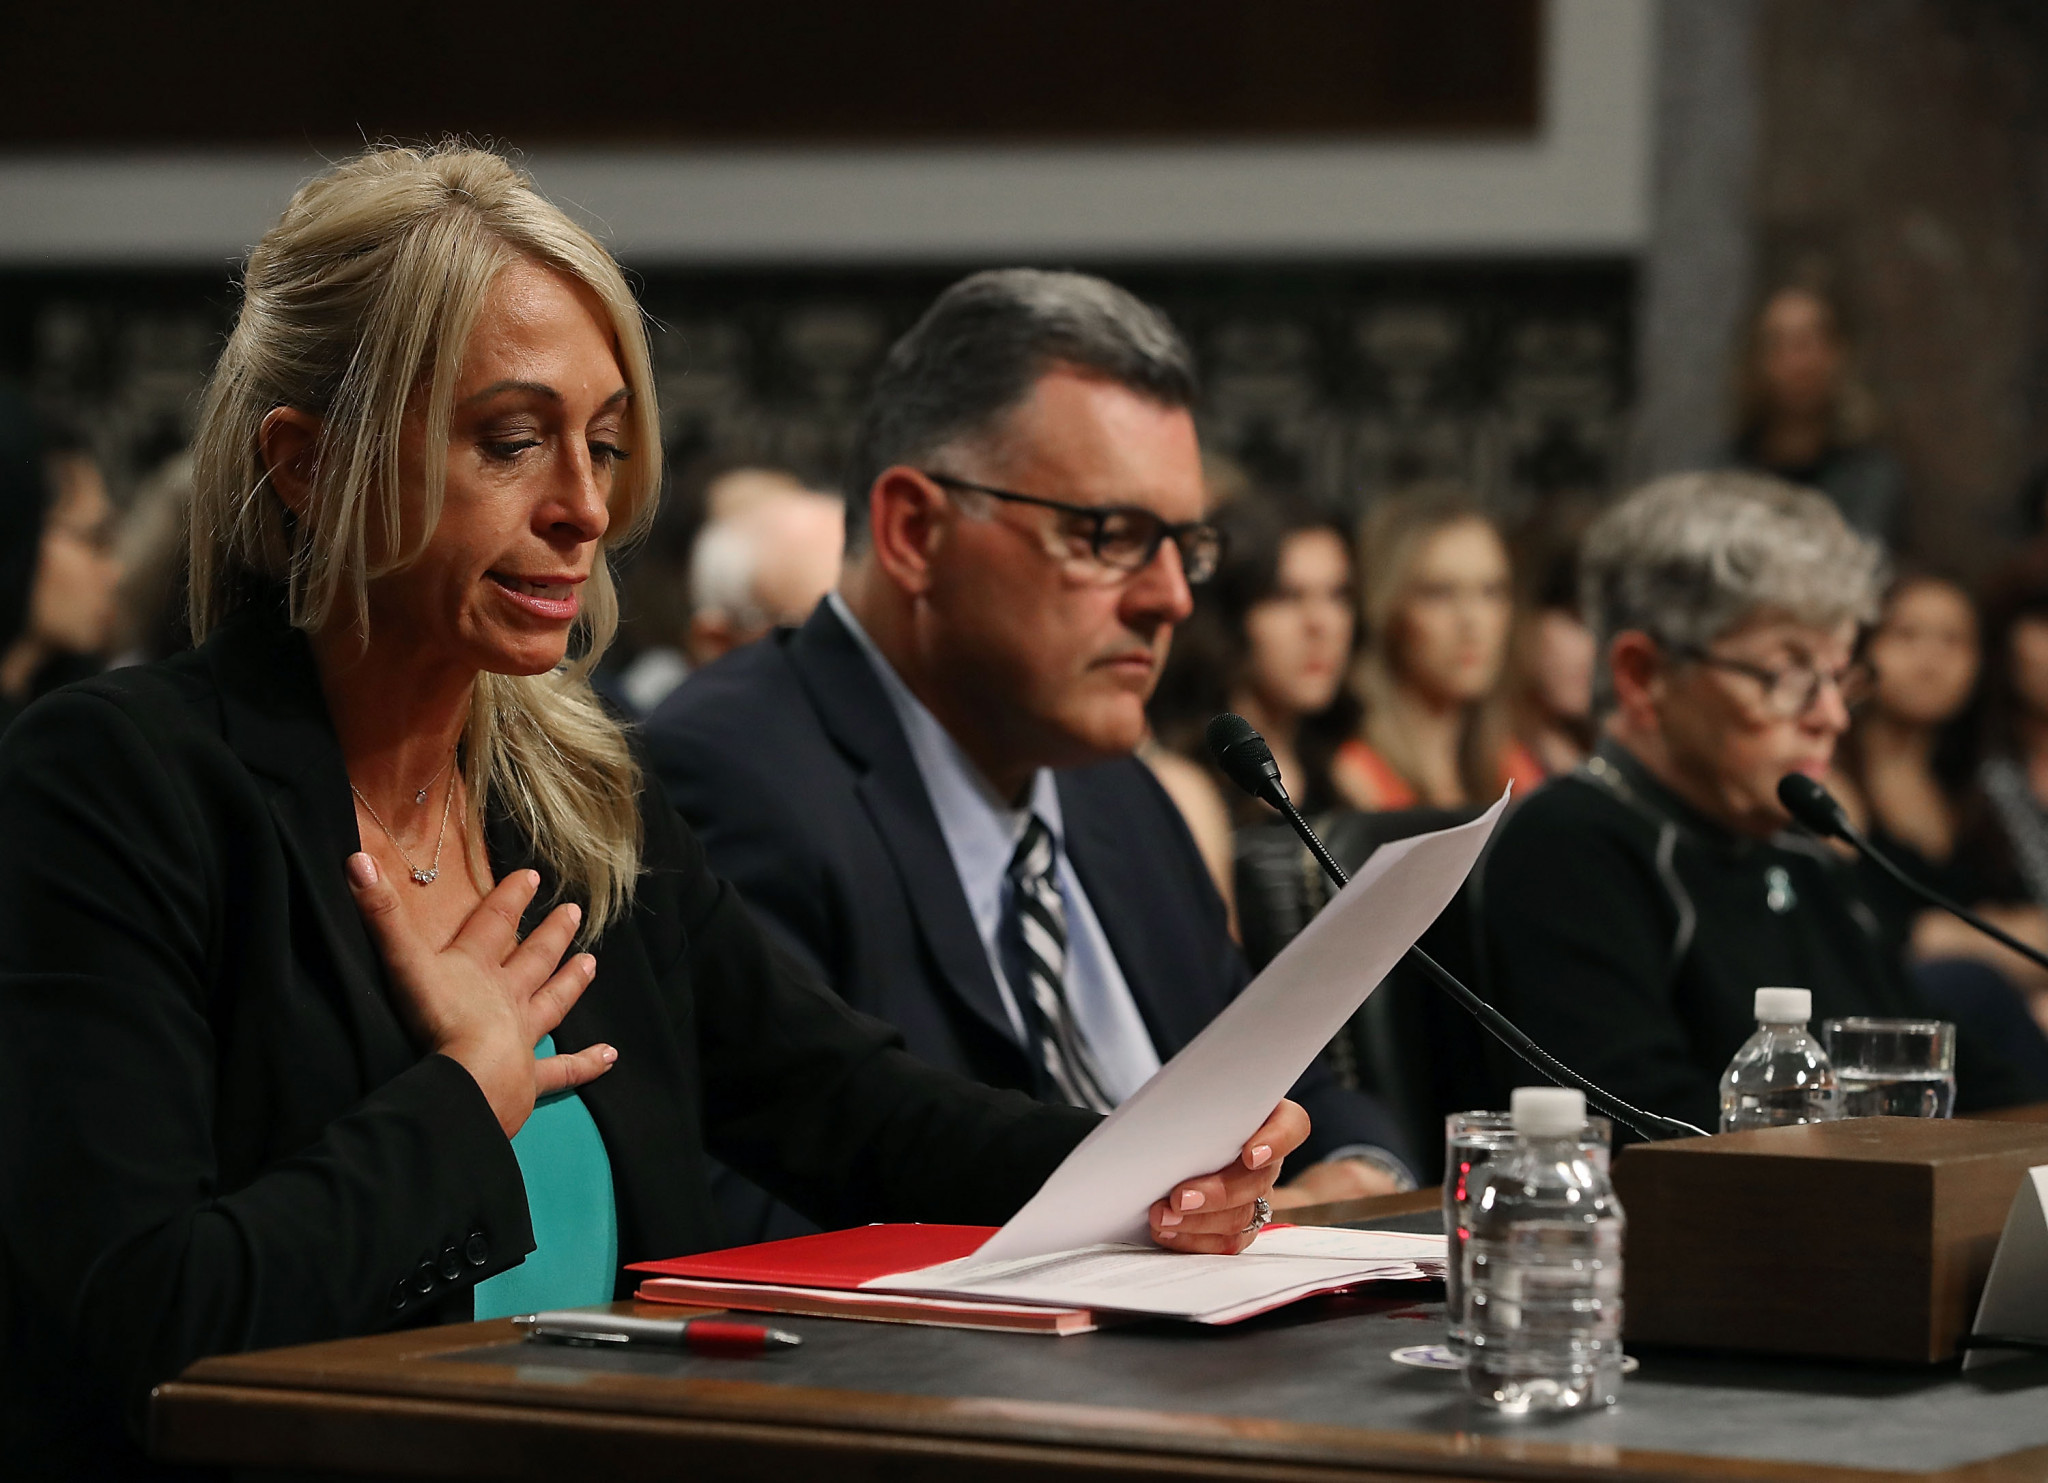 Rhonda Faehn did answer questions at the hearing ©Getty Images